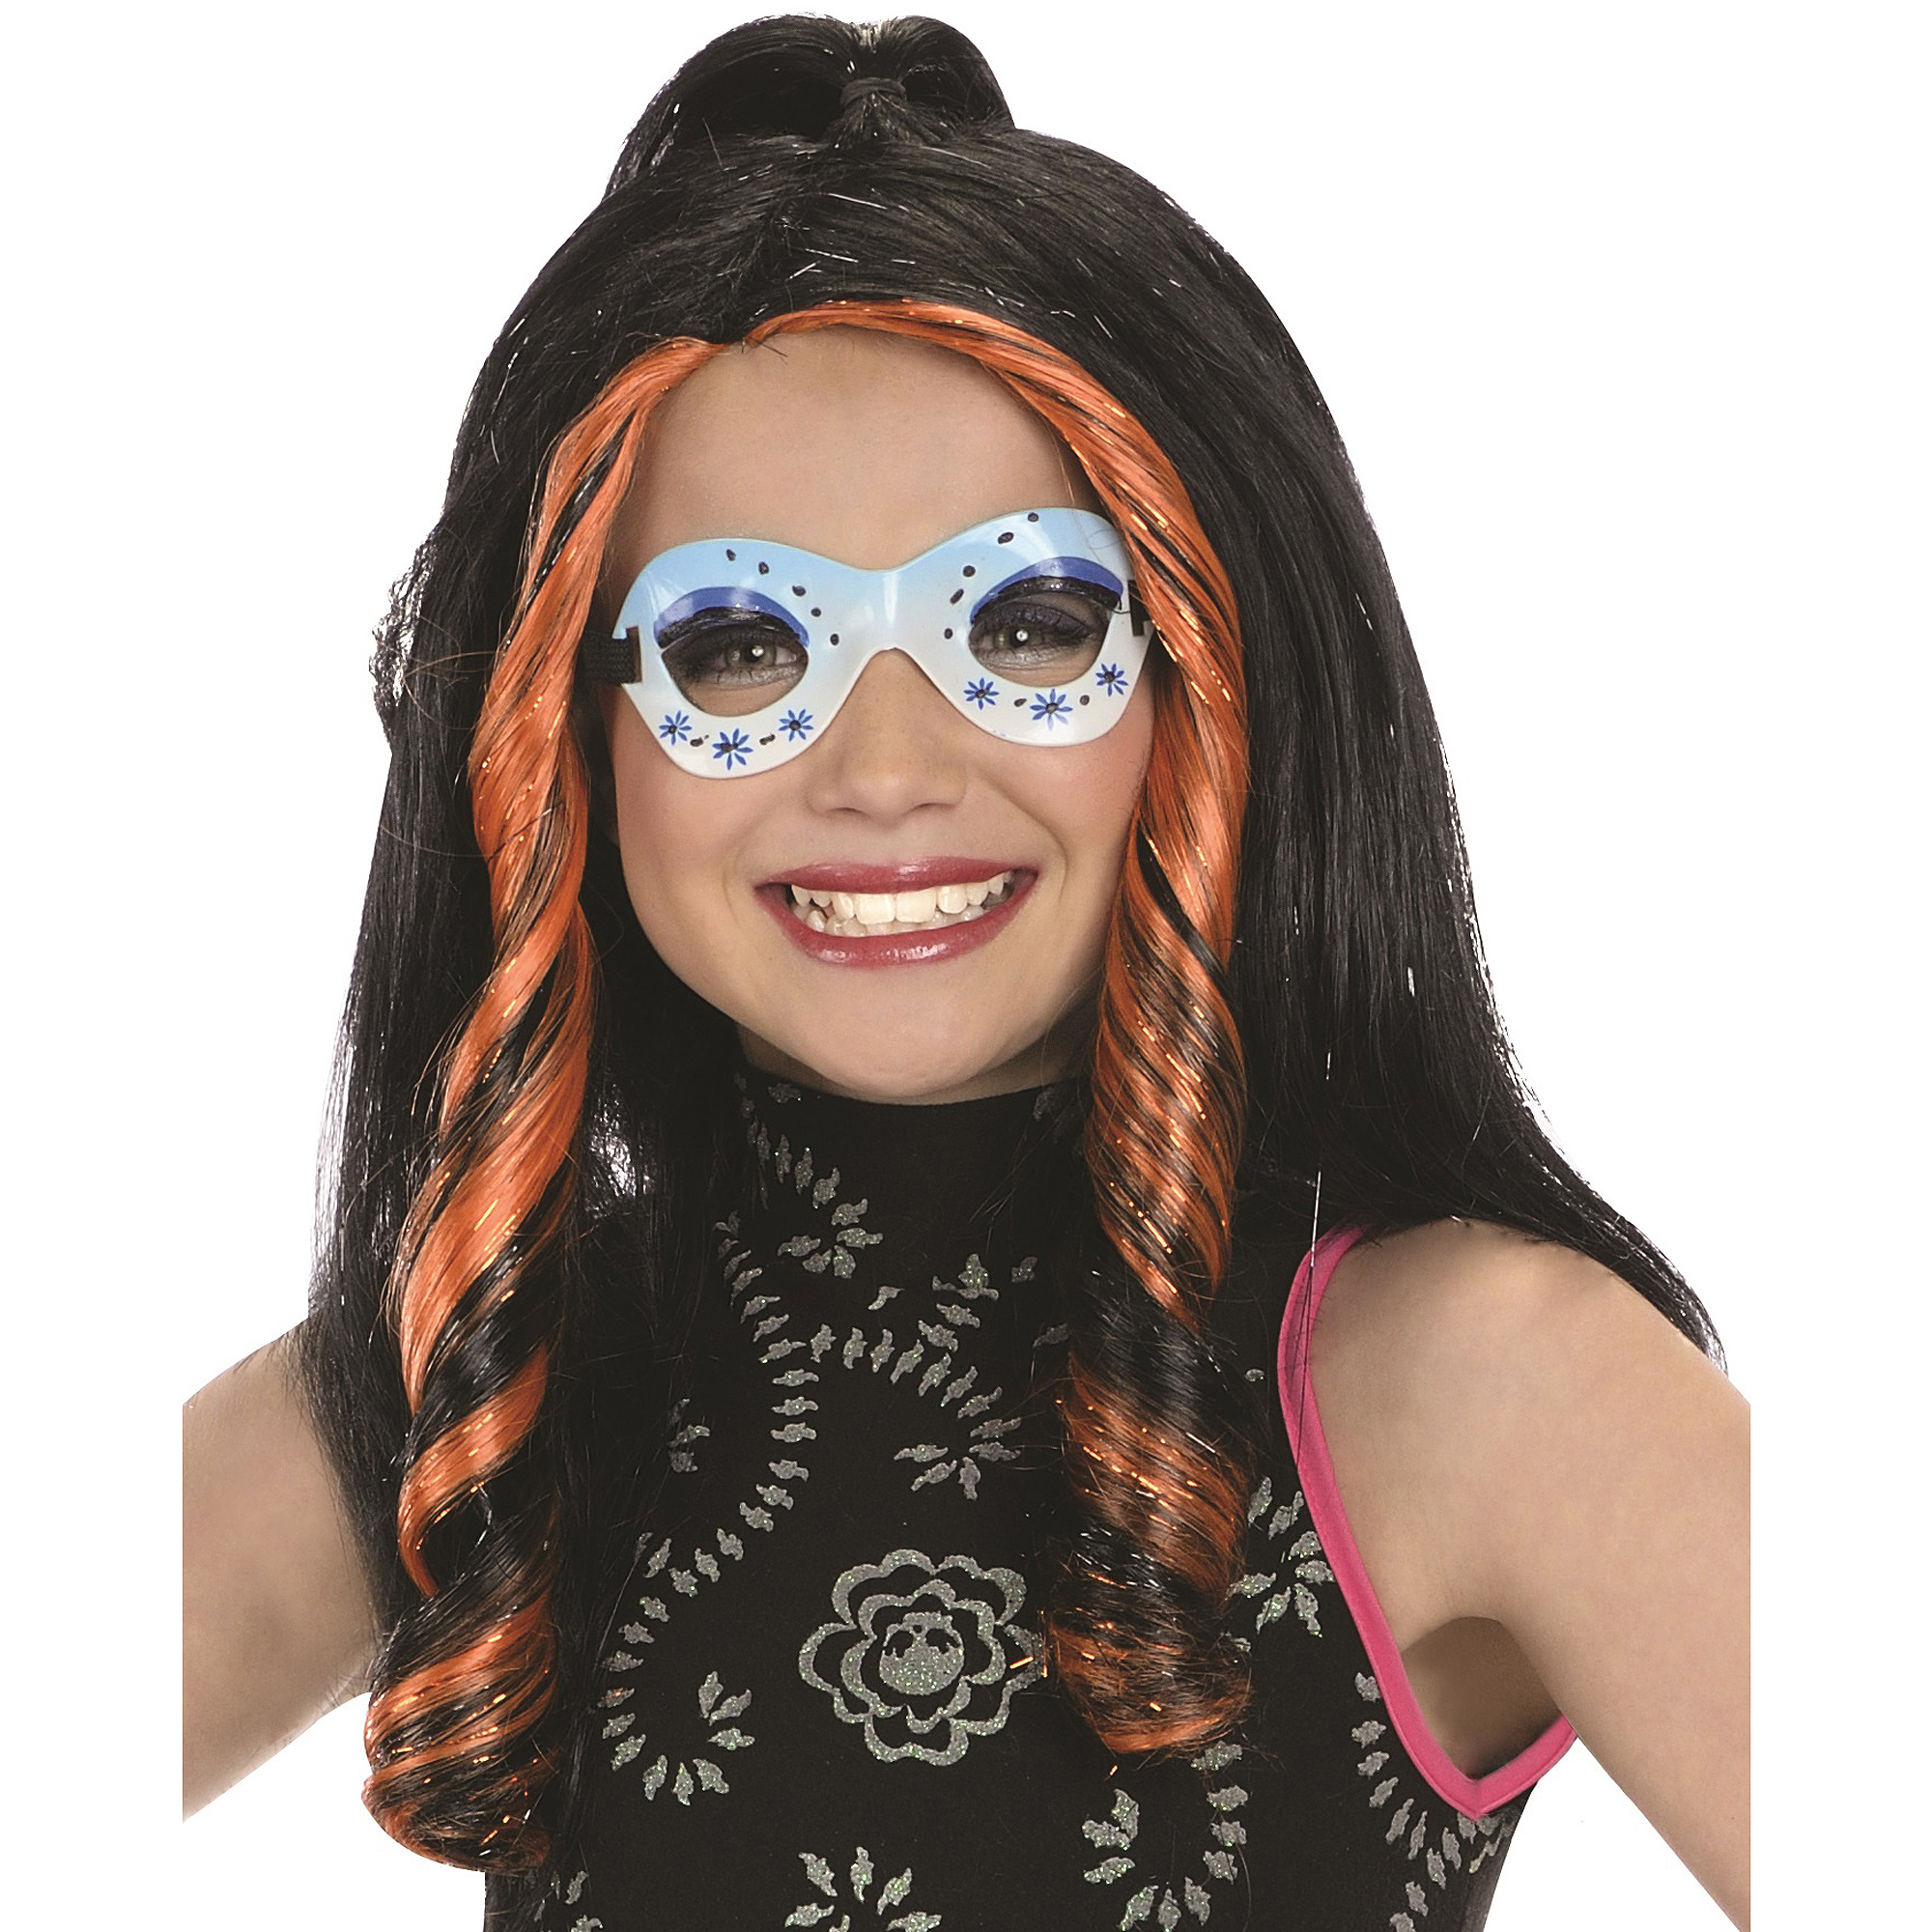 Monster High Skelita Calaveras Wig Halloween Costume Accessory